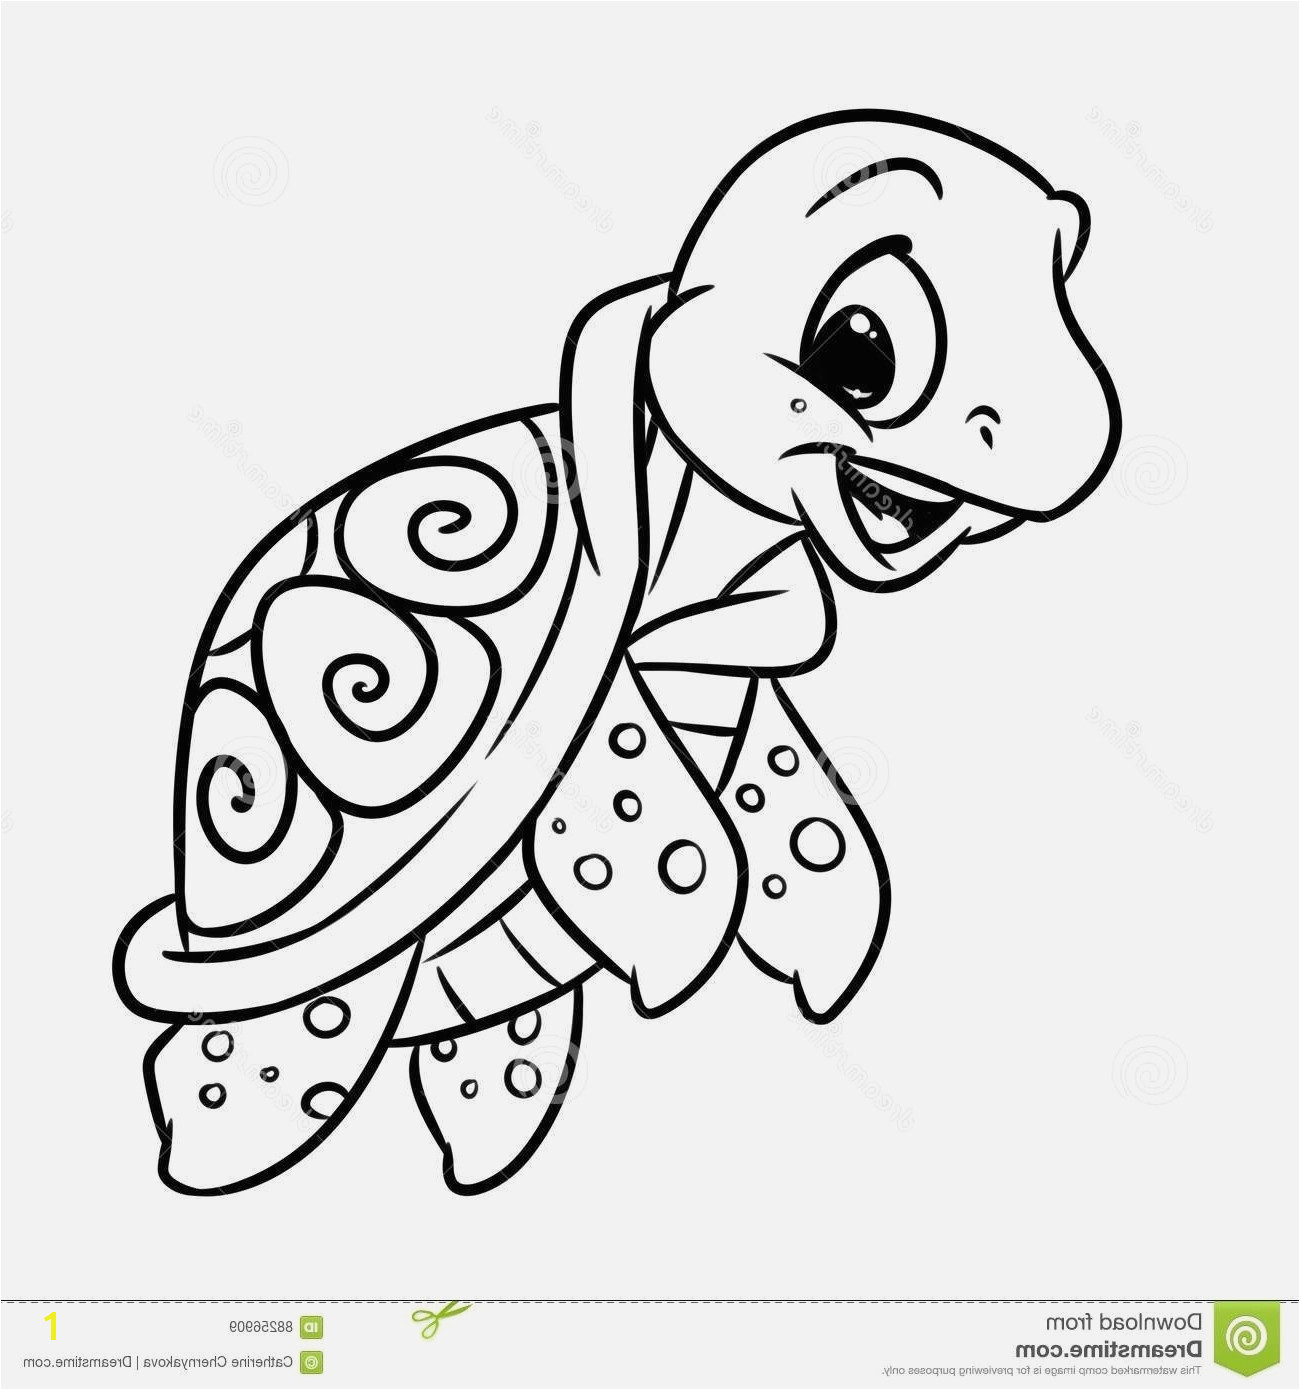 Alligator Coloring Pages Easy and Fun Unique Sea Turtles Coloring Pages Kung Fupanda 2 Coloring Pages